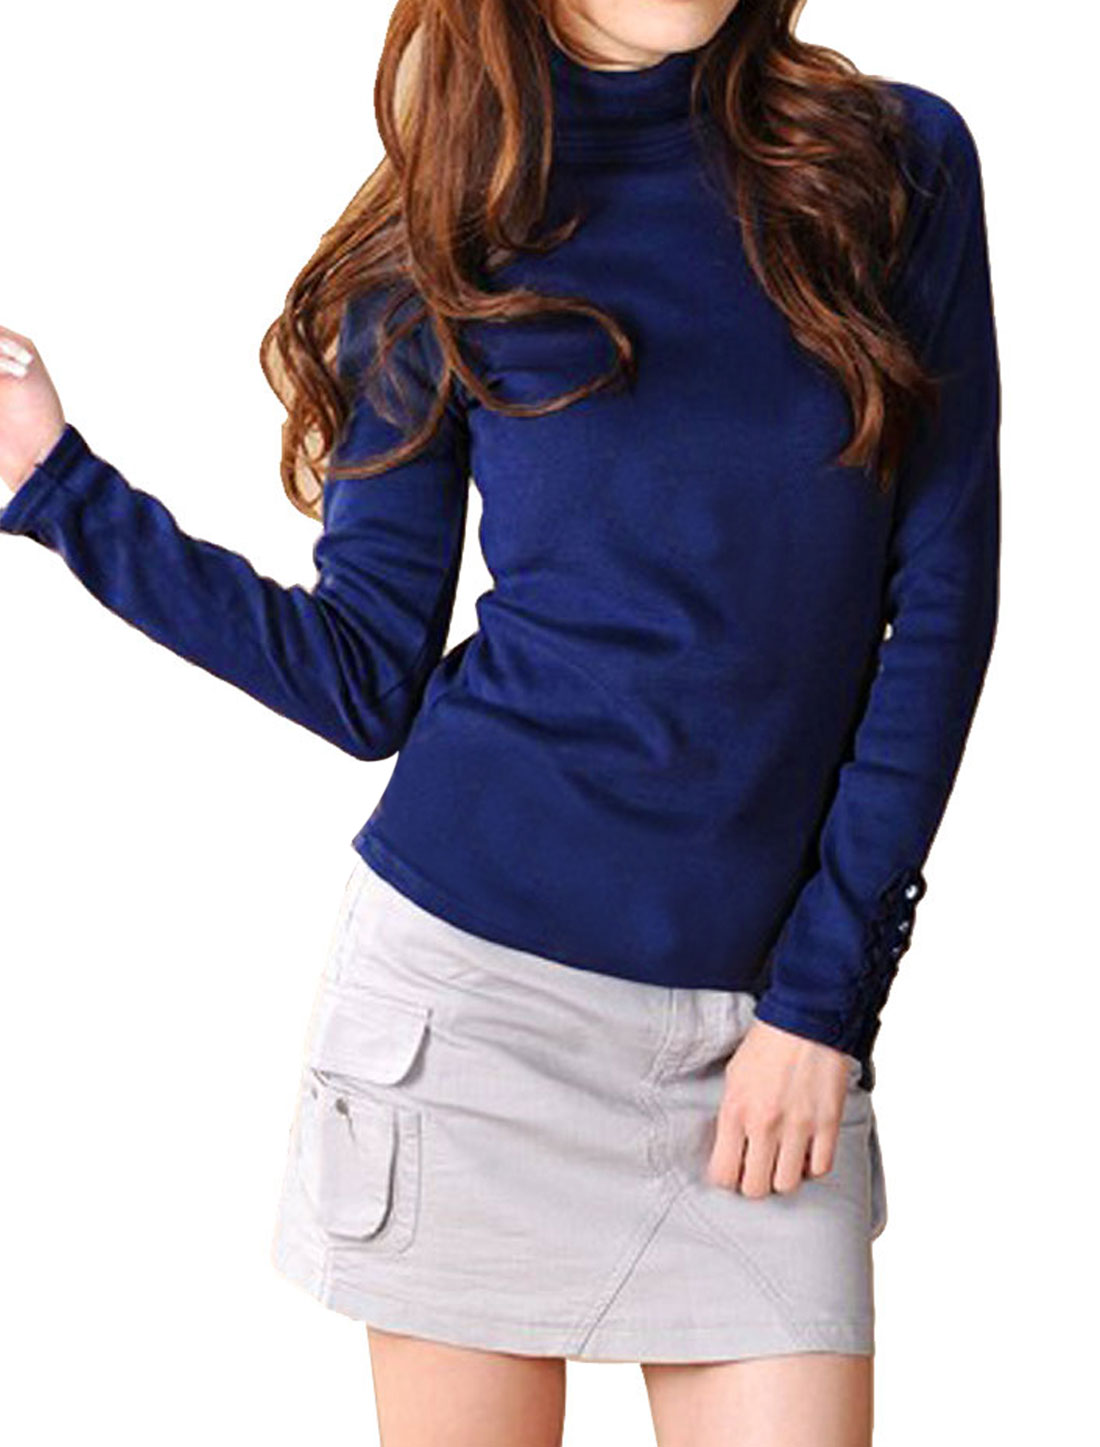 XS Royal Blue Pullover Long Sleeve Closefitting Shirt for Woman